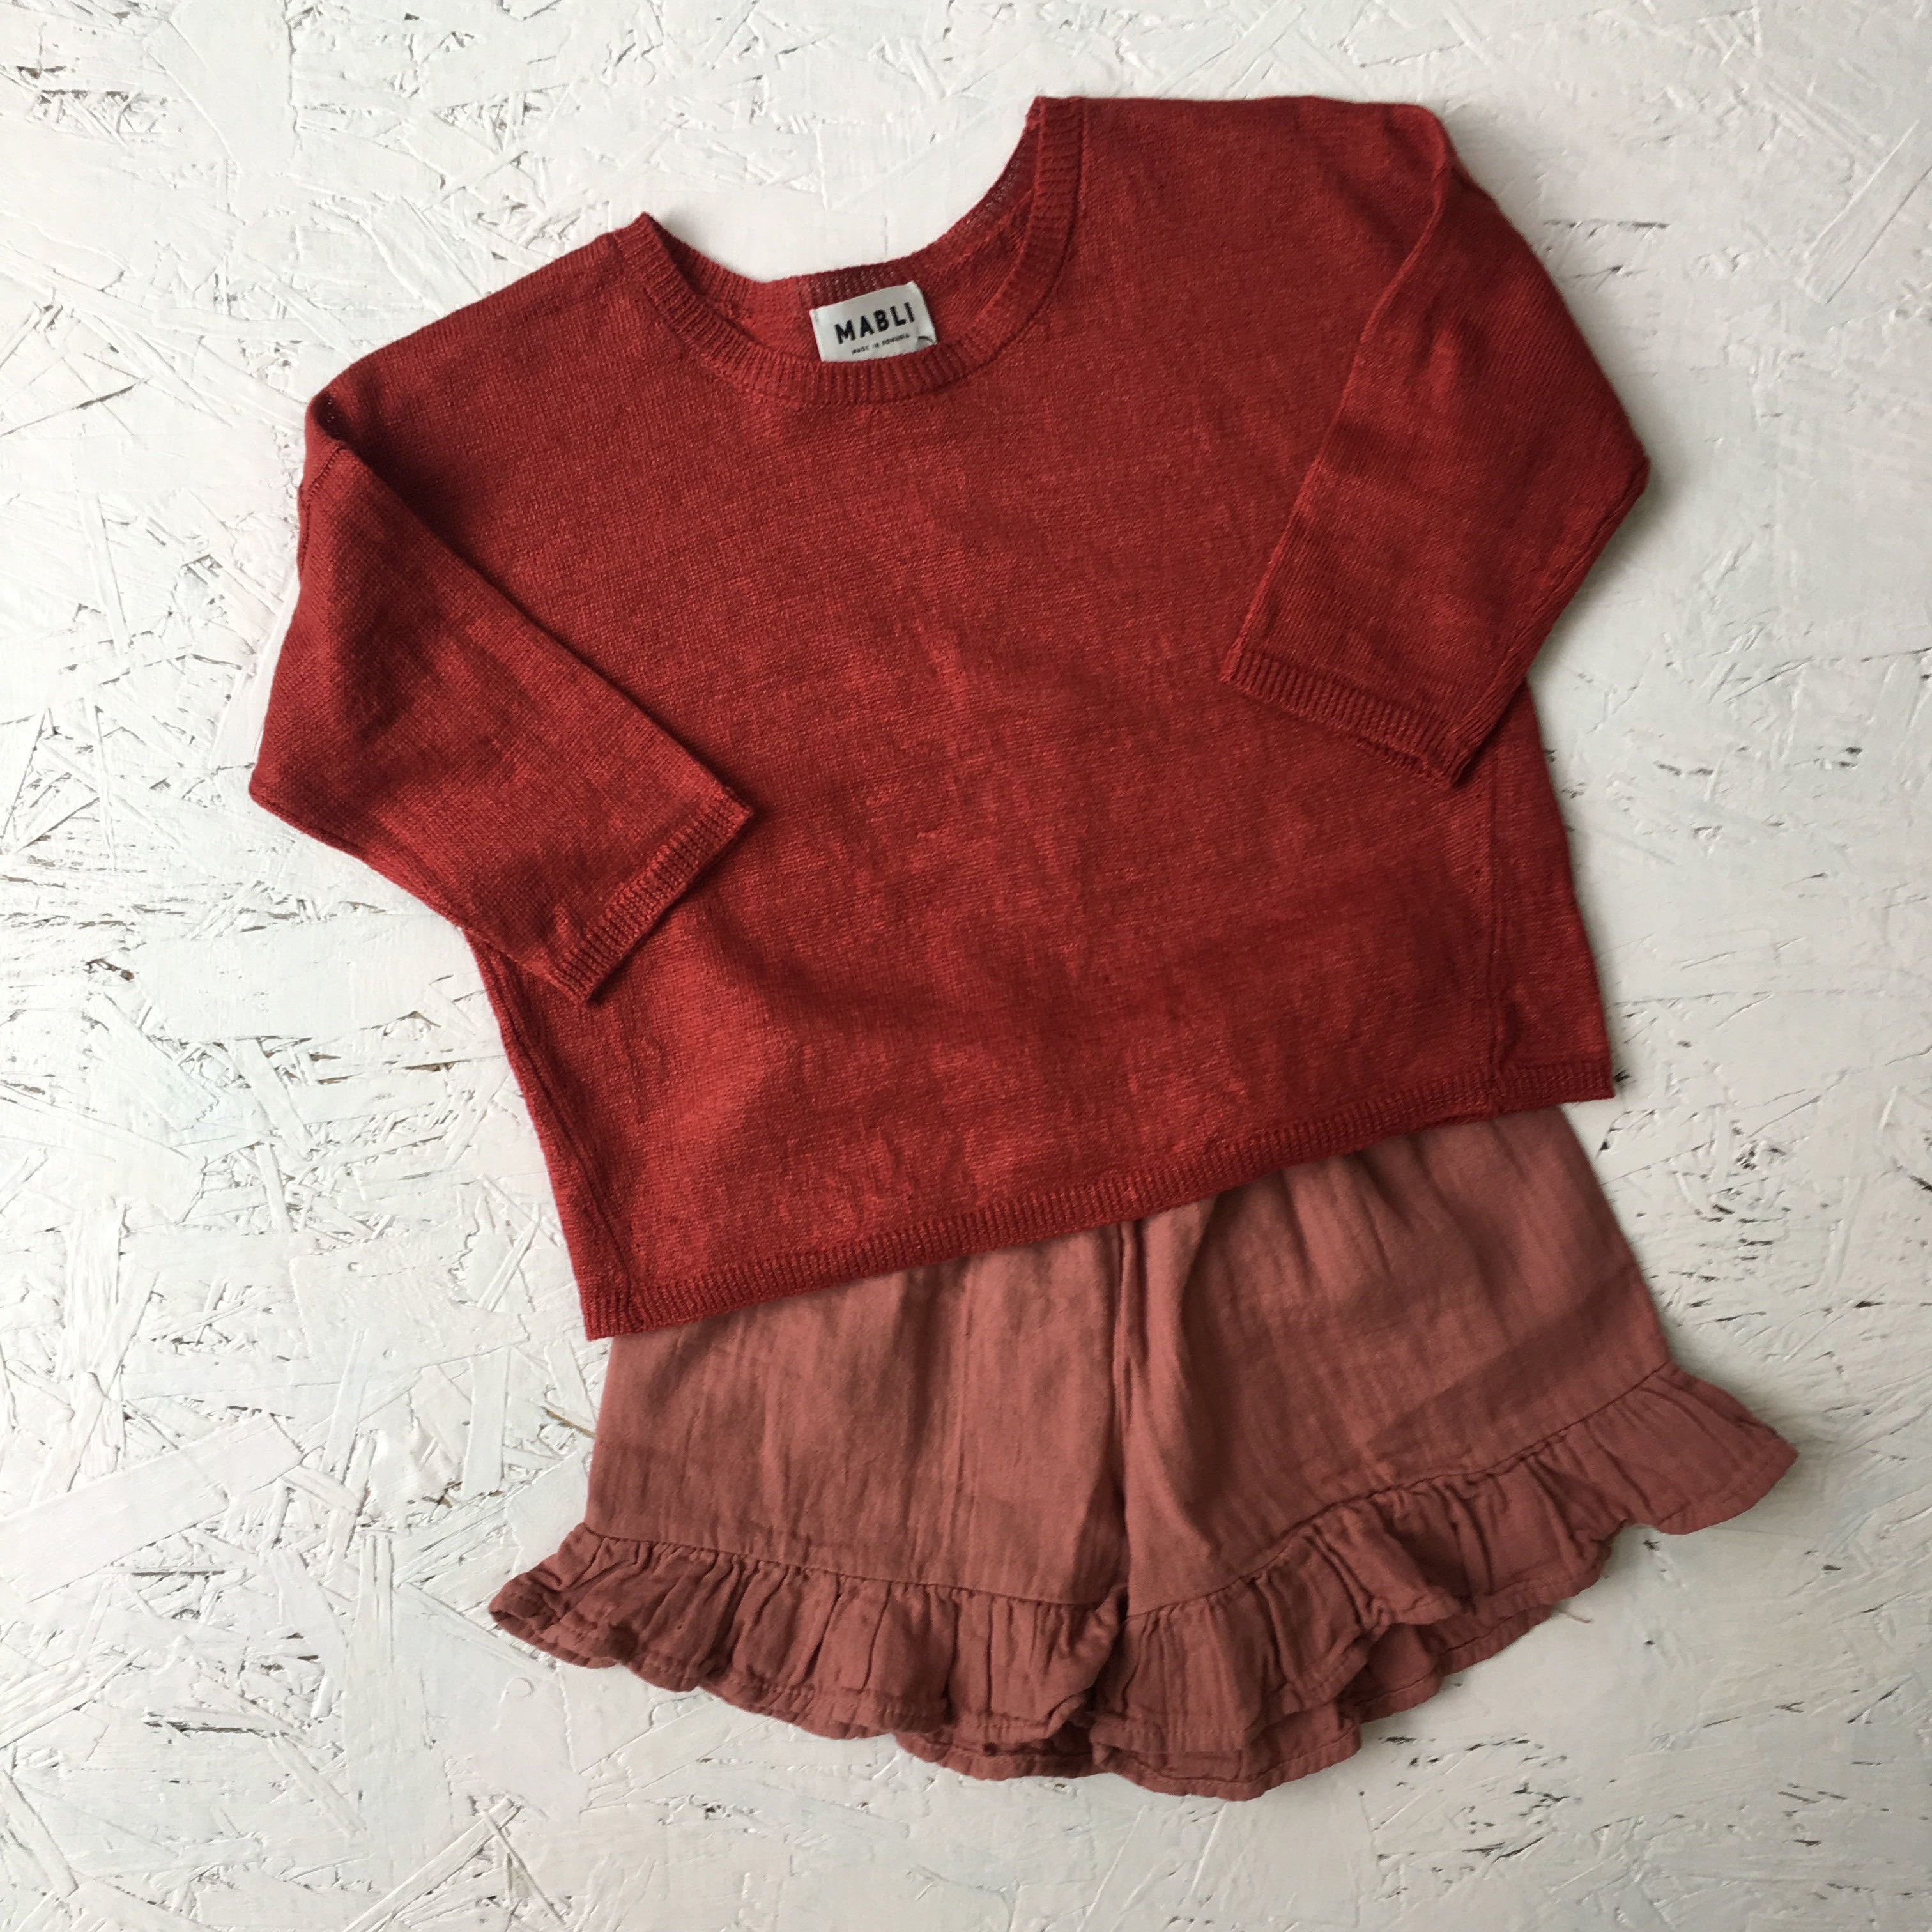 mabli knit sweater